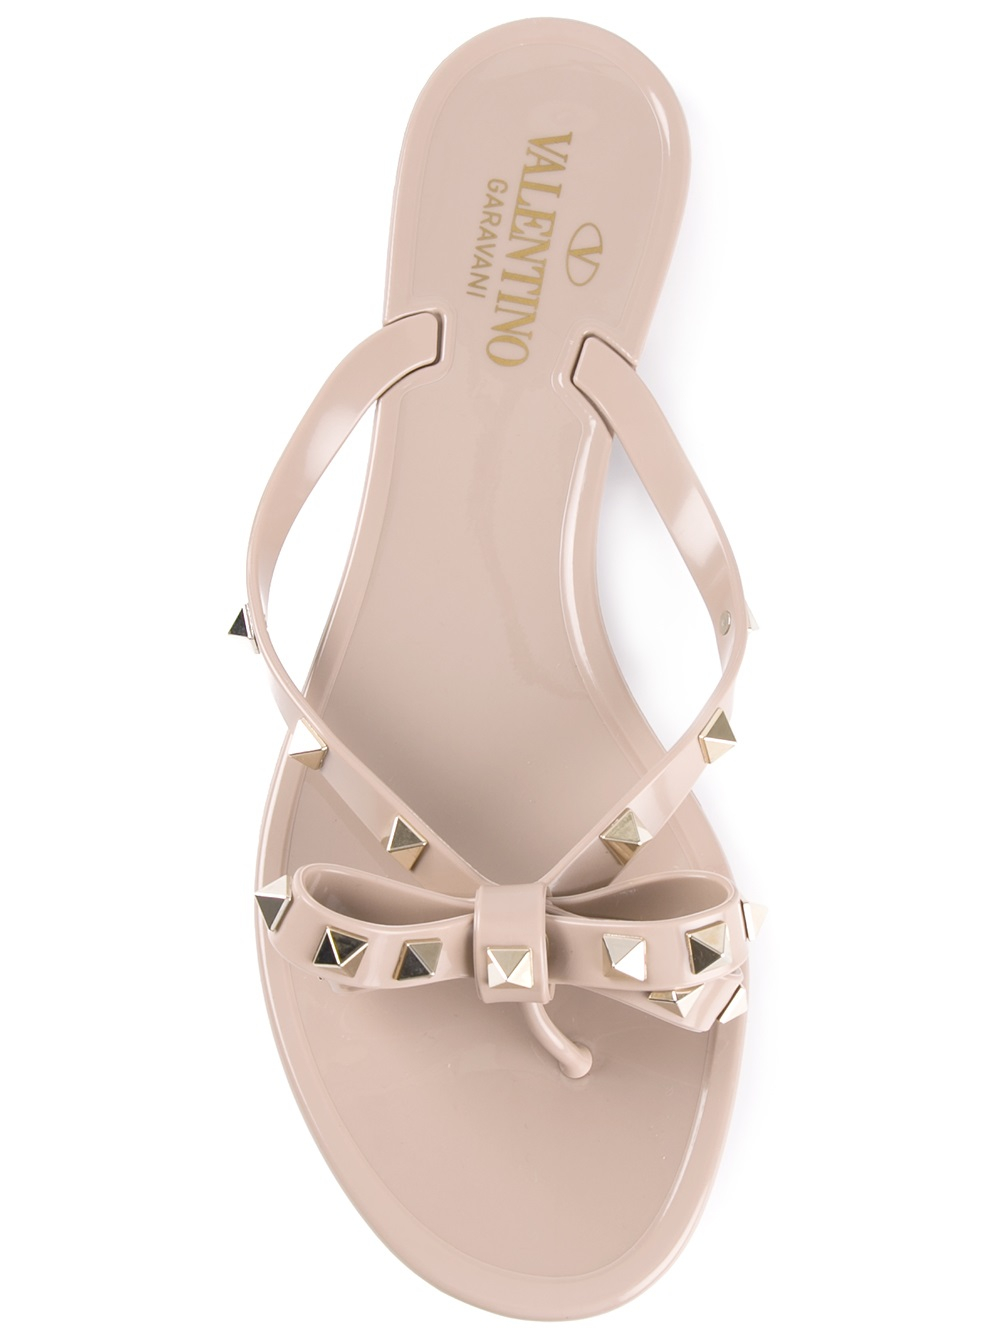 ce86a173616e62 Valentino  Rockstud  Flip Flops in Natural - Lyst